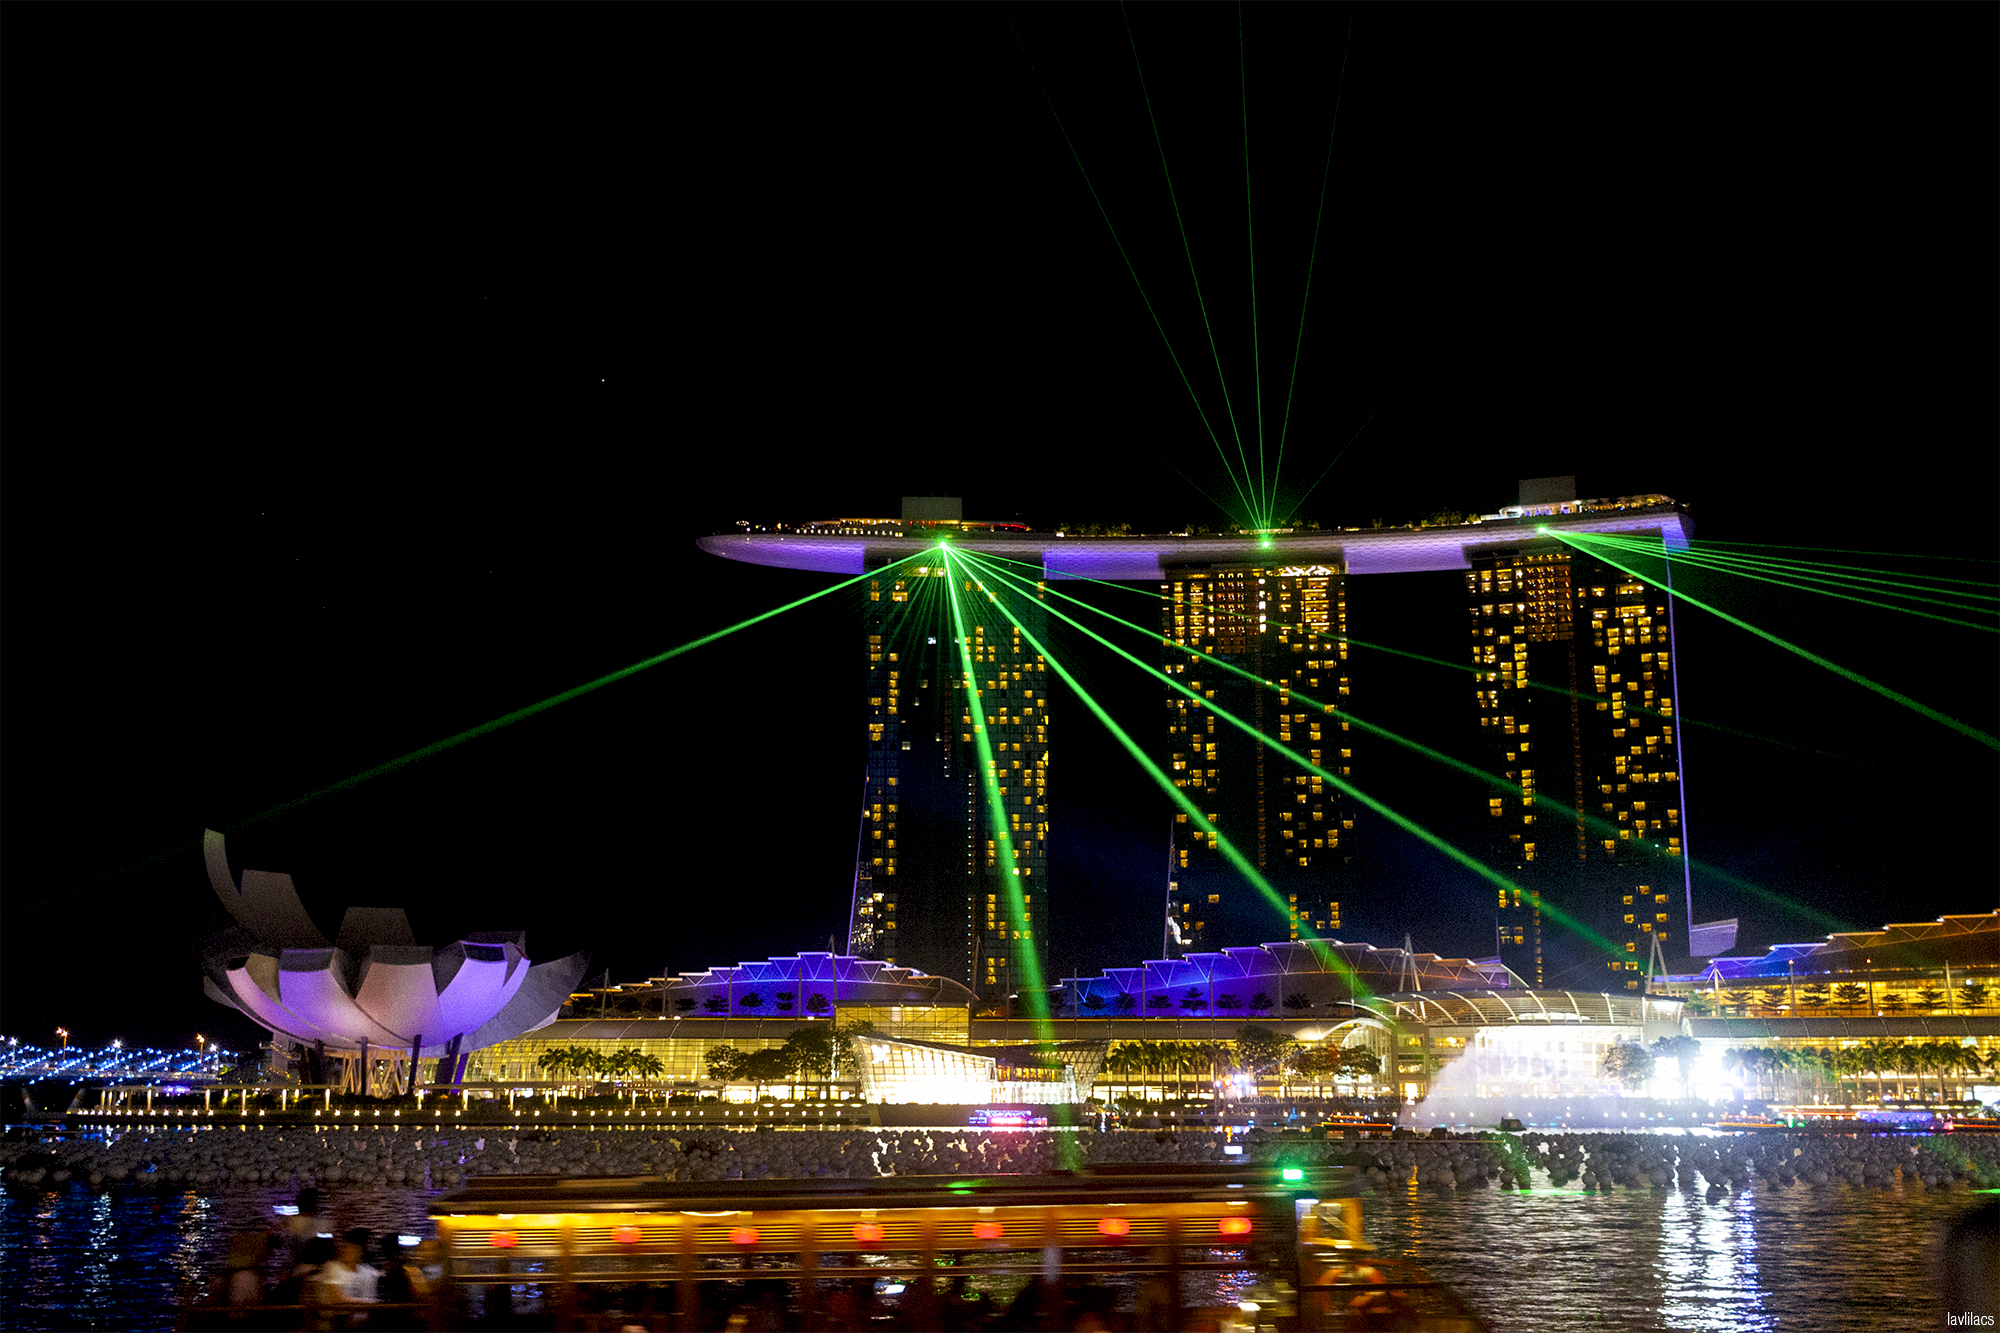 lavlilacs Singapore Marina Bay Sands night lights show